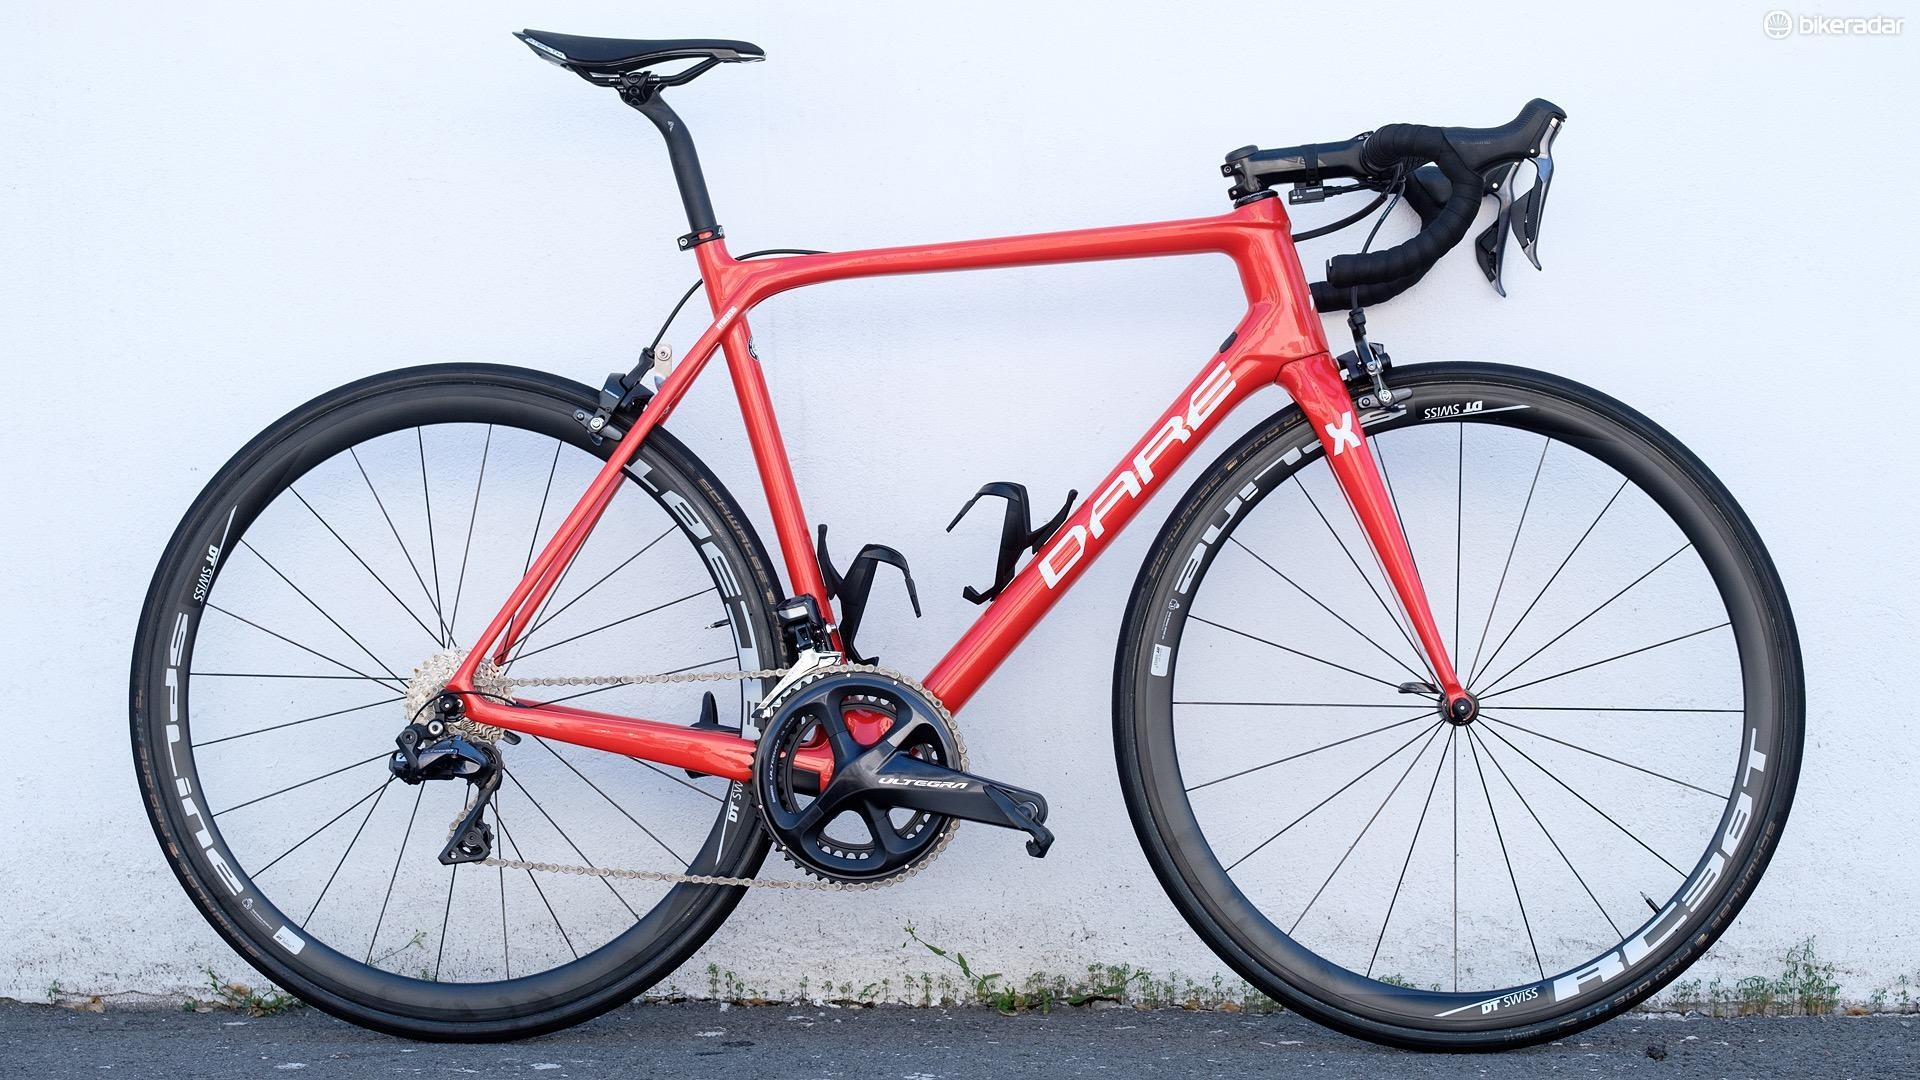 Dare's MR1S is available from €3,059 / $3,199 with a Shimano Ultegra mechanical build. This Ultegra Di2 example would be more like €4,449 / $4,499